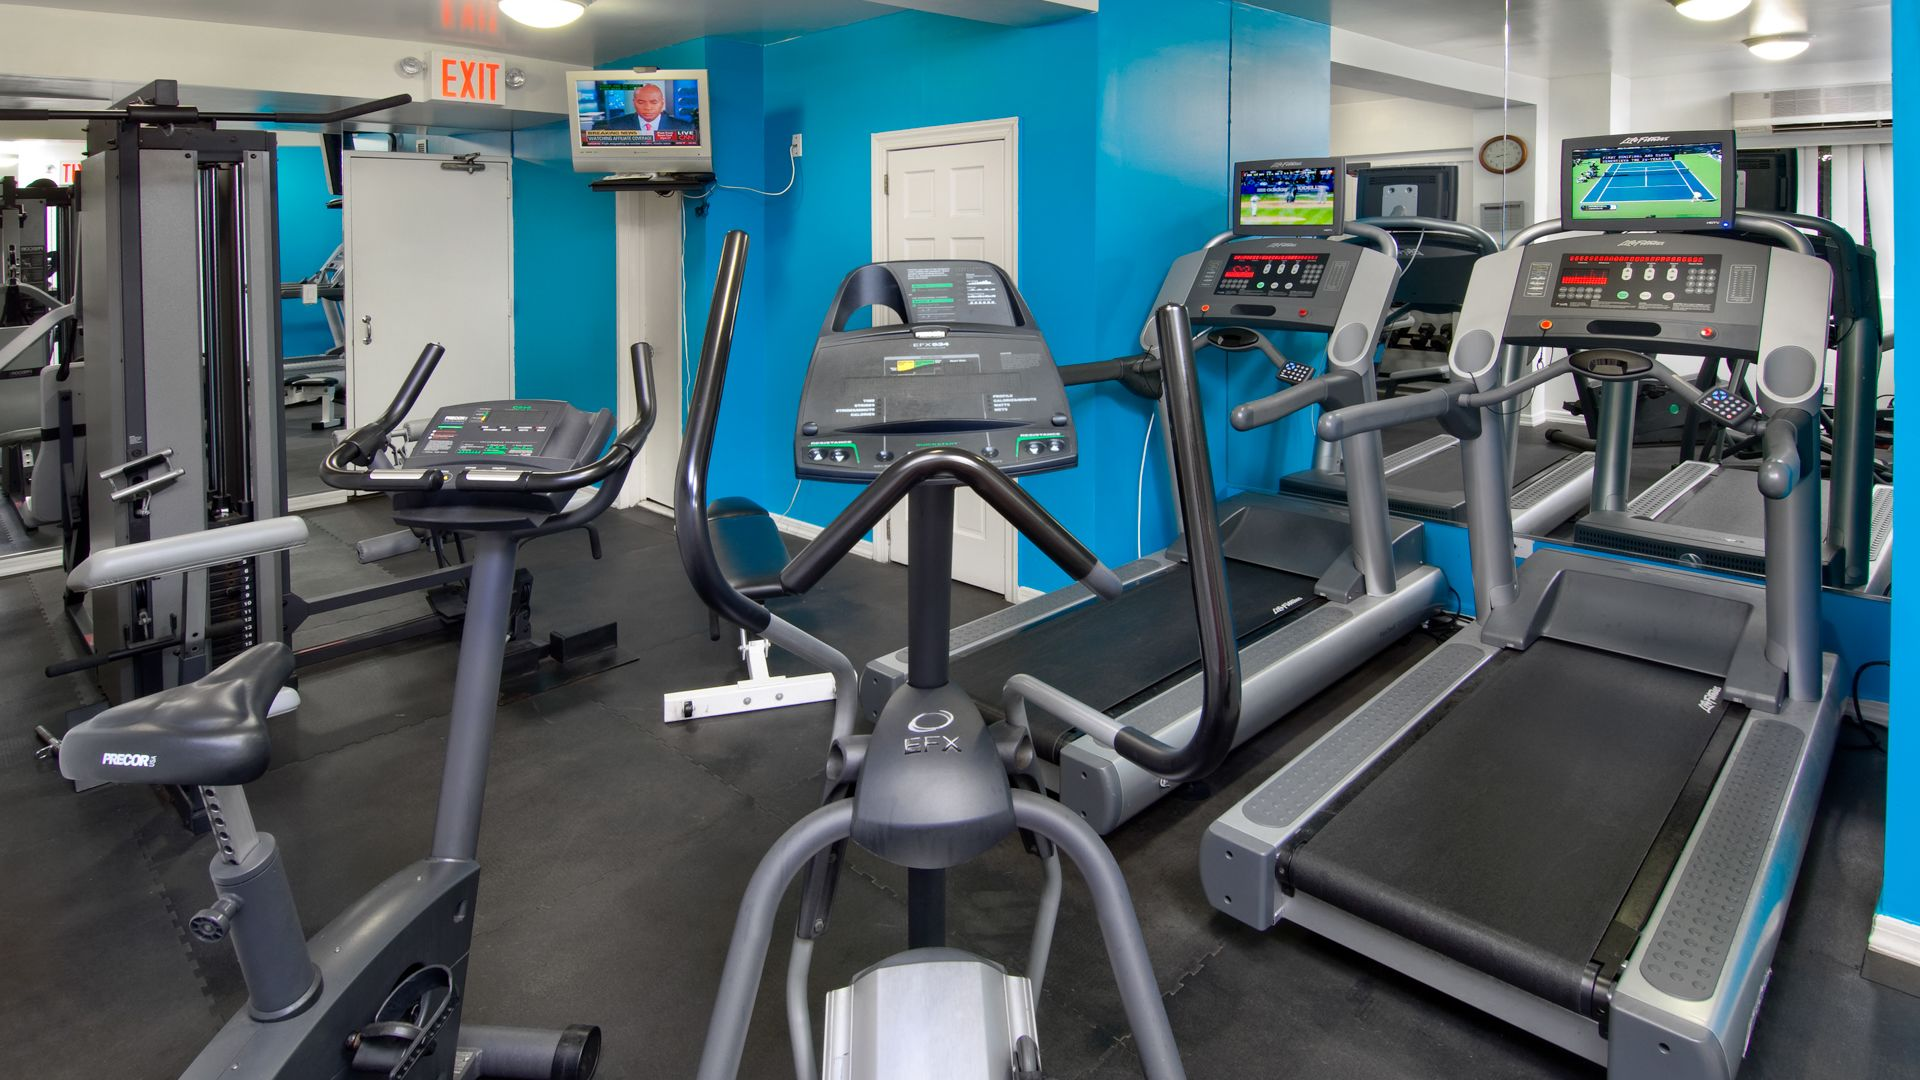 303 East 83rd Apartments - Fitness Center